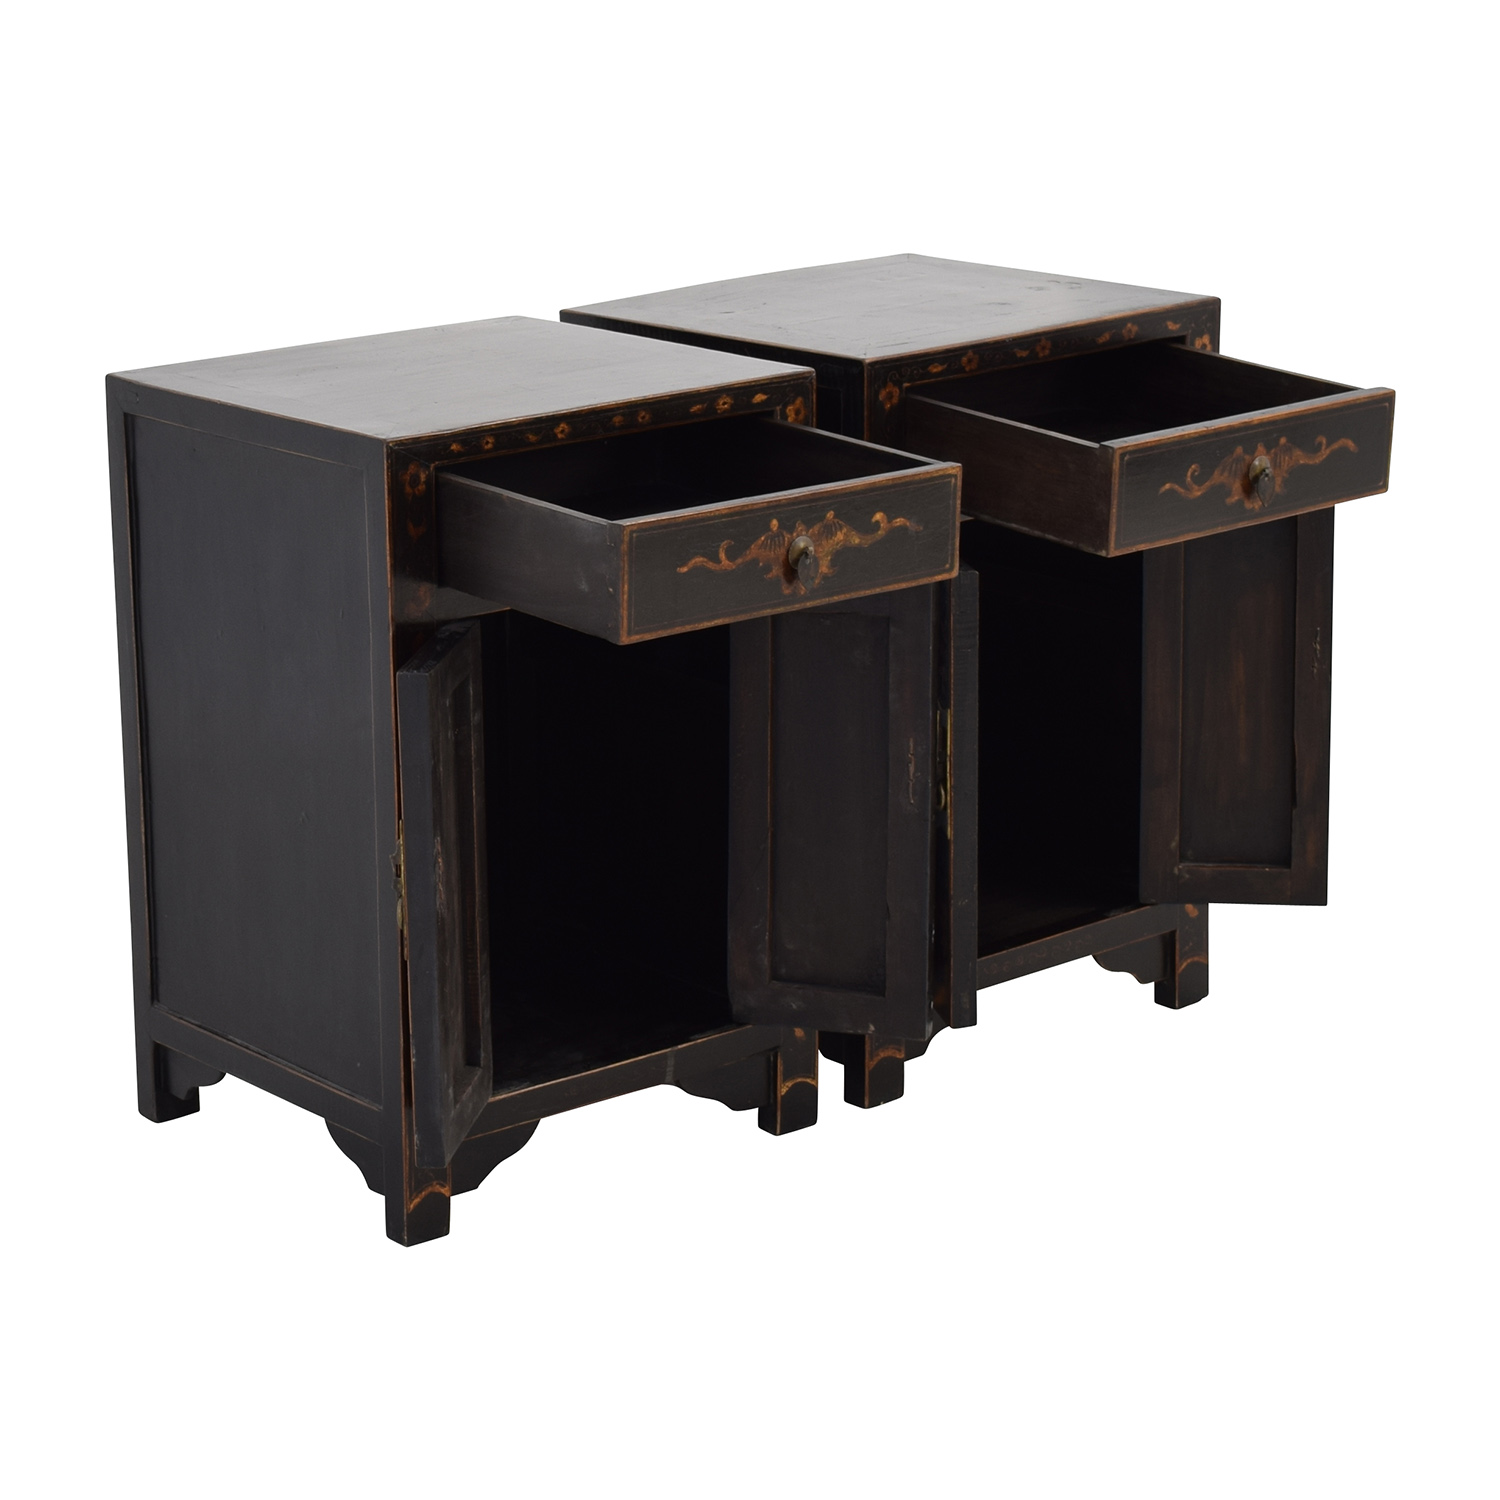 Buy Side Table 82 Off Antique Wood Side Tables With Floral Design Tables